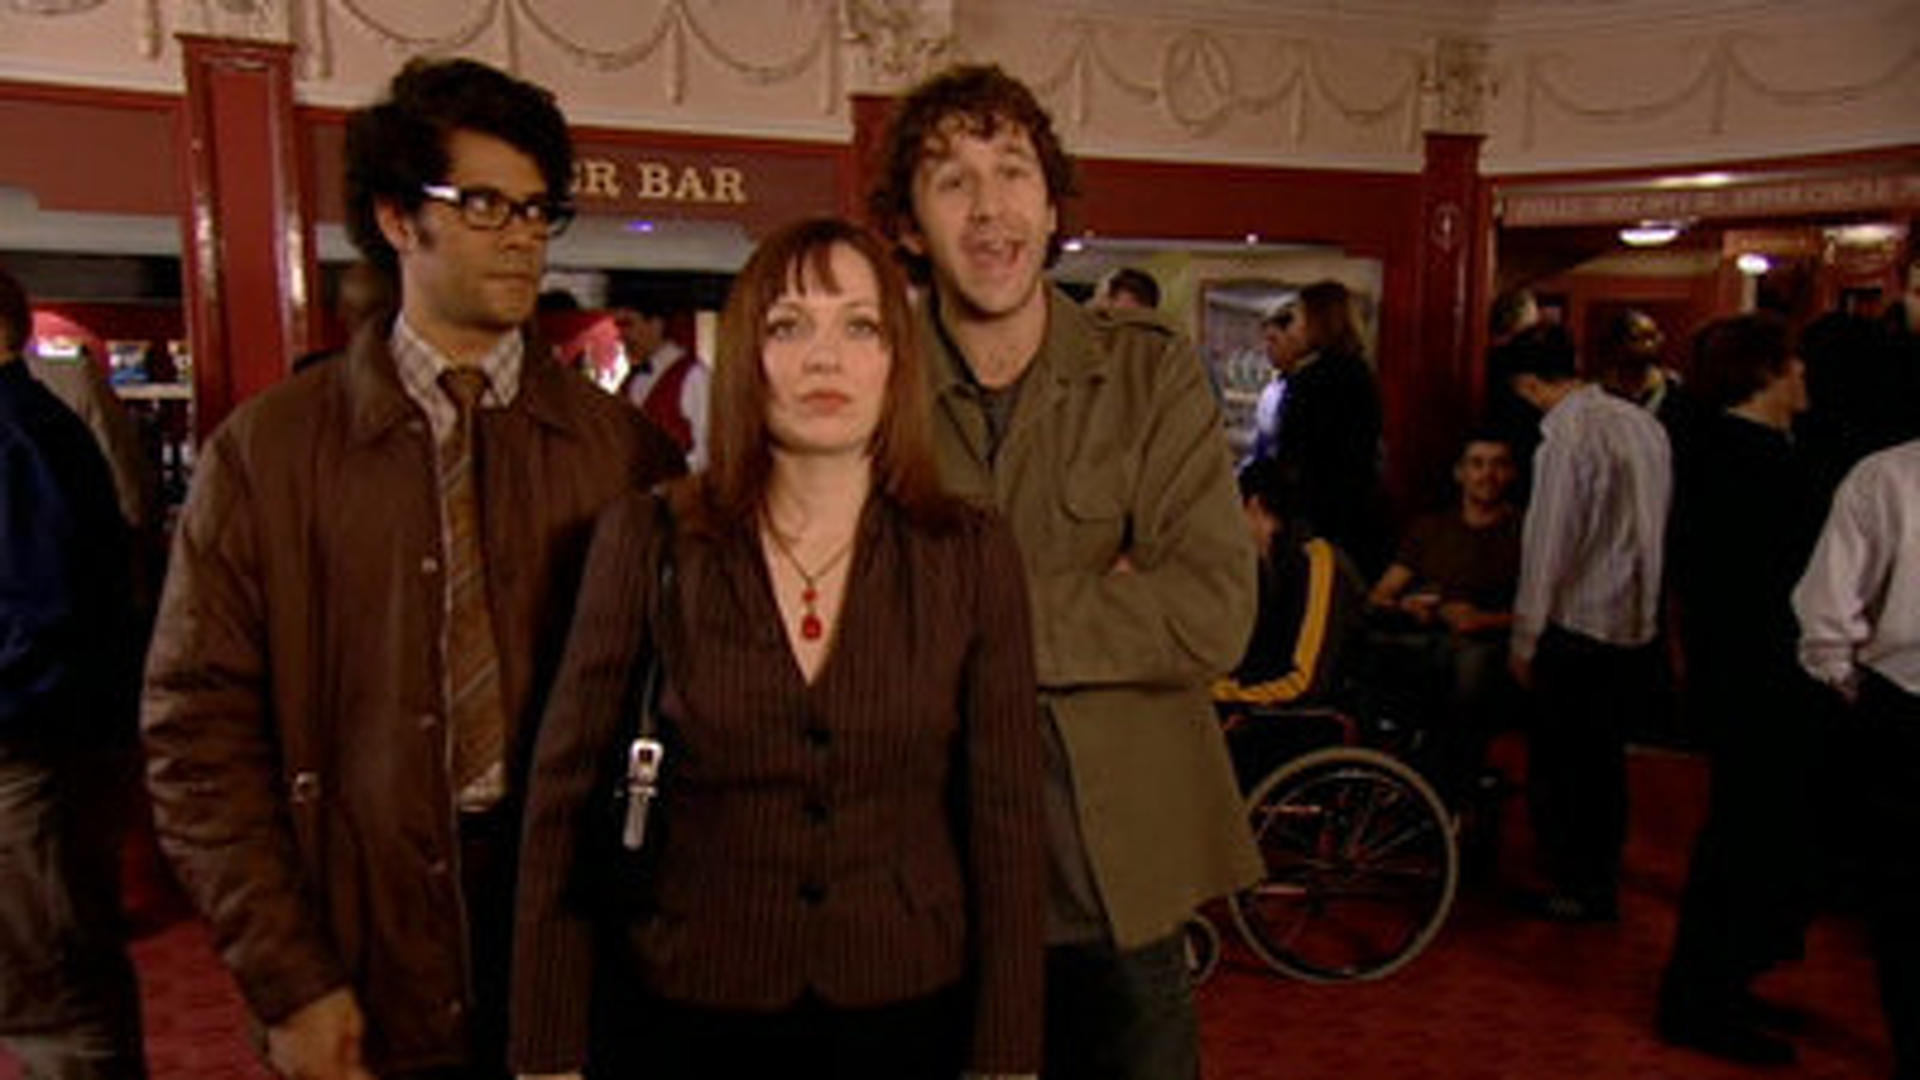 IT Crowd (S02E01): The Work Outing Summary - Season 2 Episode 1 Guide